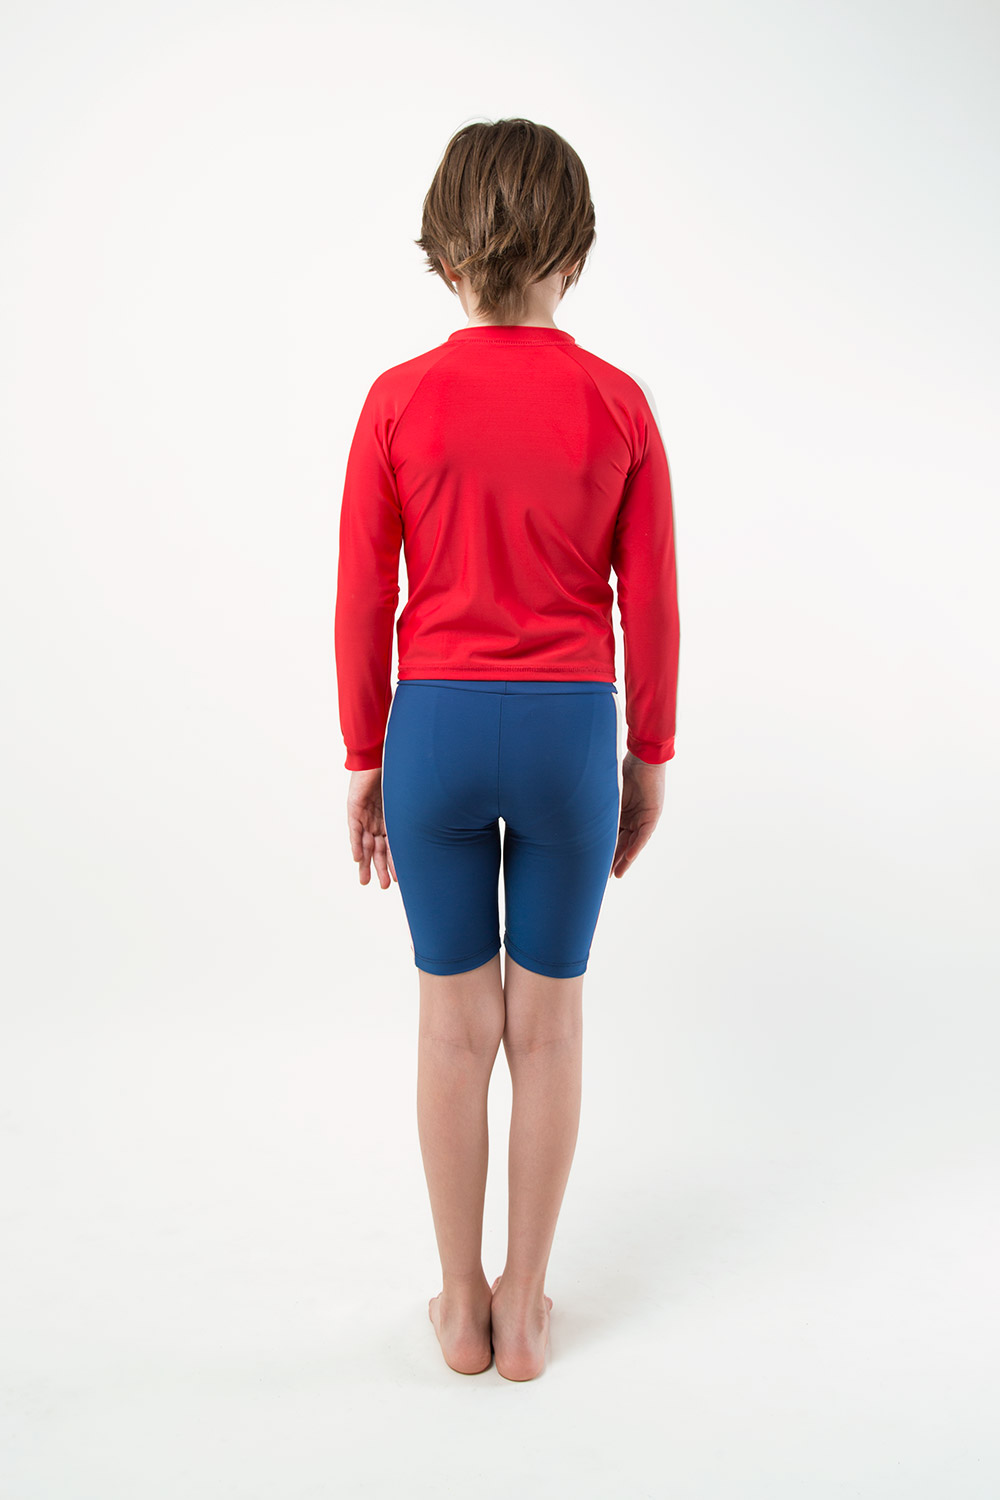 eco friendly blue jammer footprint collection back view boy